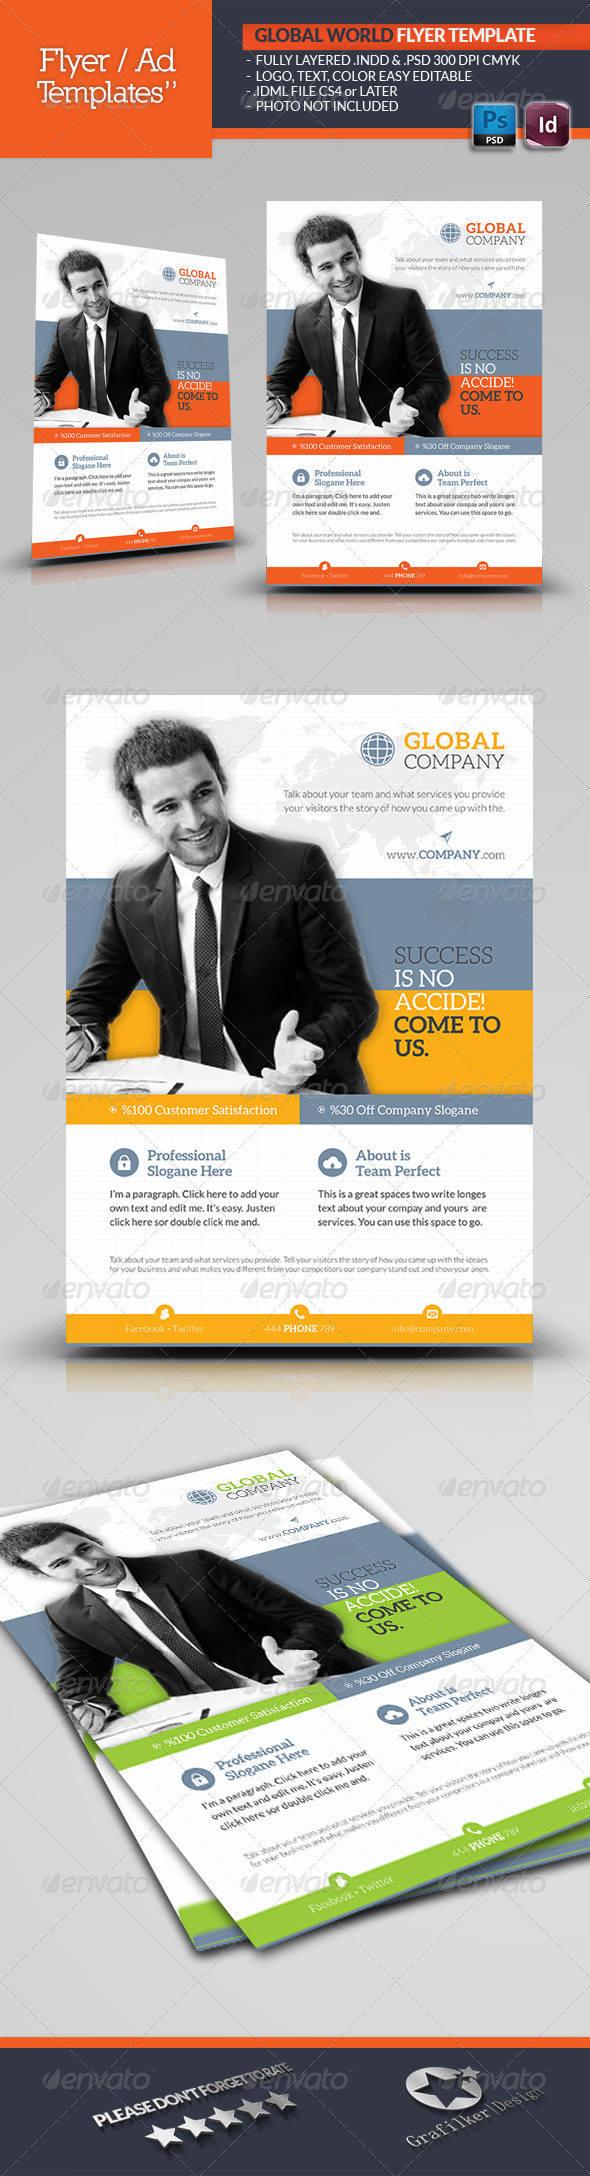 GraphicRiver Global World Flyer Template 5960417